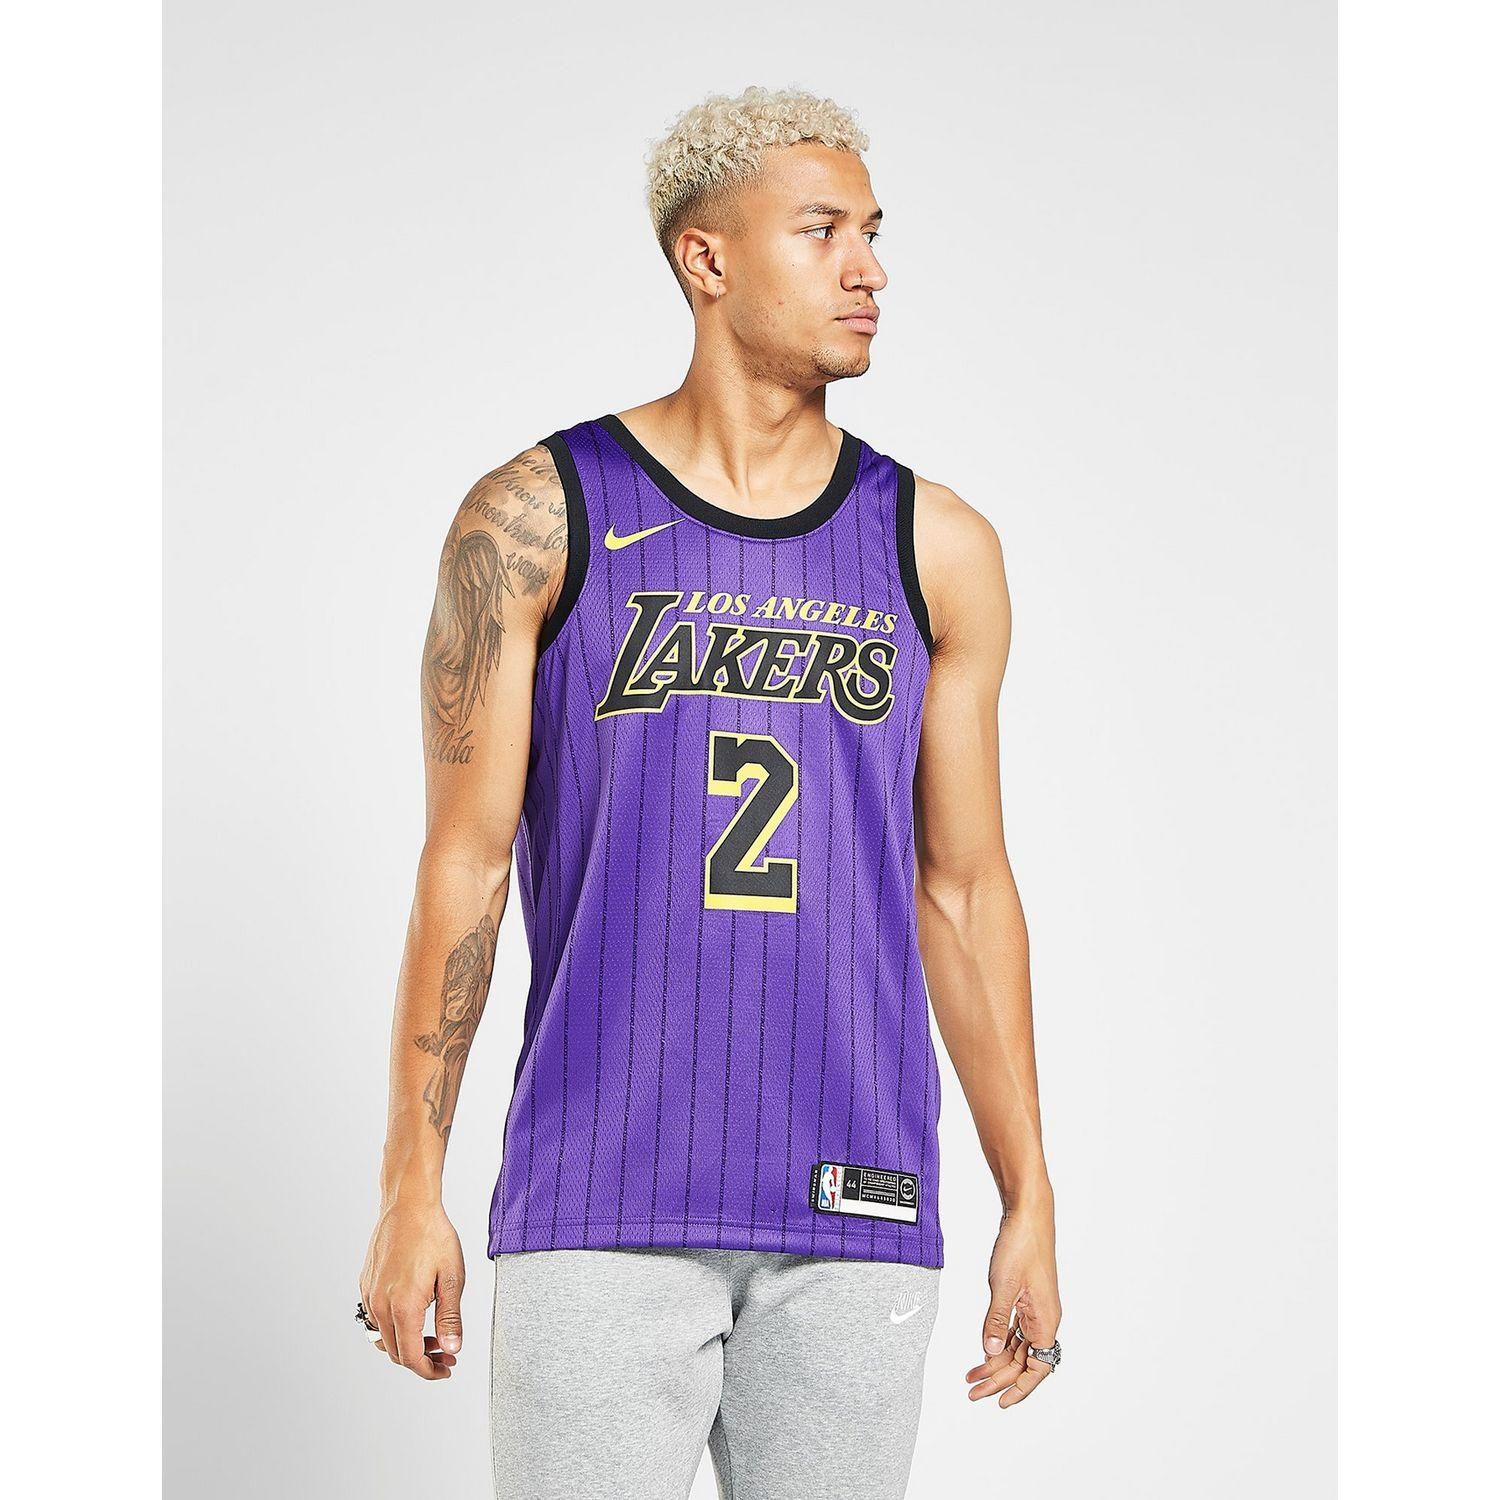 5a4aab375 Lyst - Nike Nba Los Angeles Lakers Ball  2 City Jersey in Purple for Men